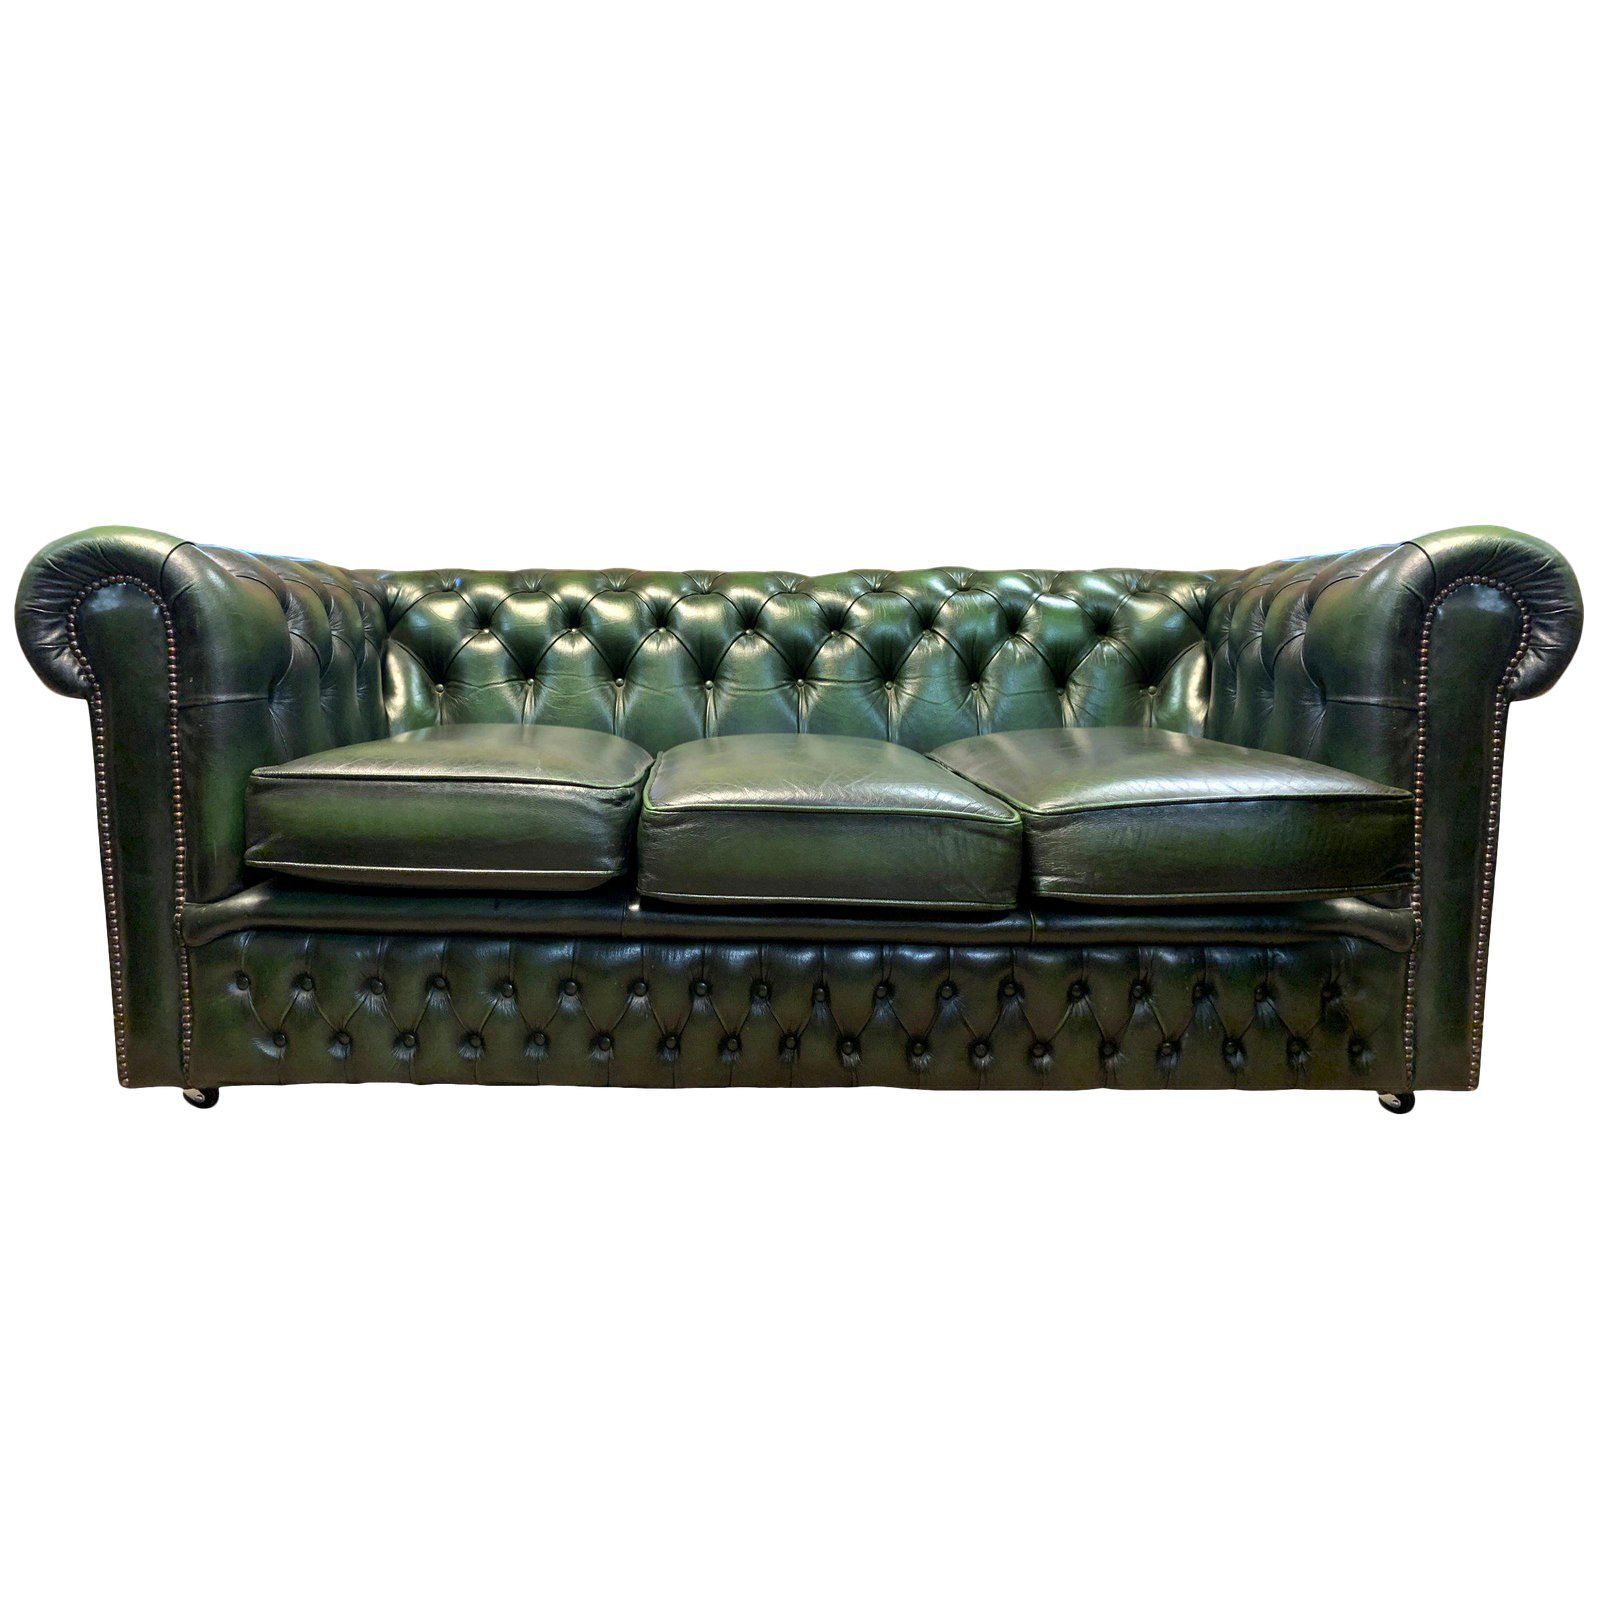 Midcentury English Emerald Green Chesterfield Sofa Green Leather